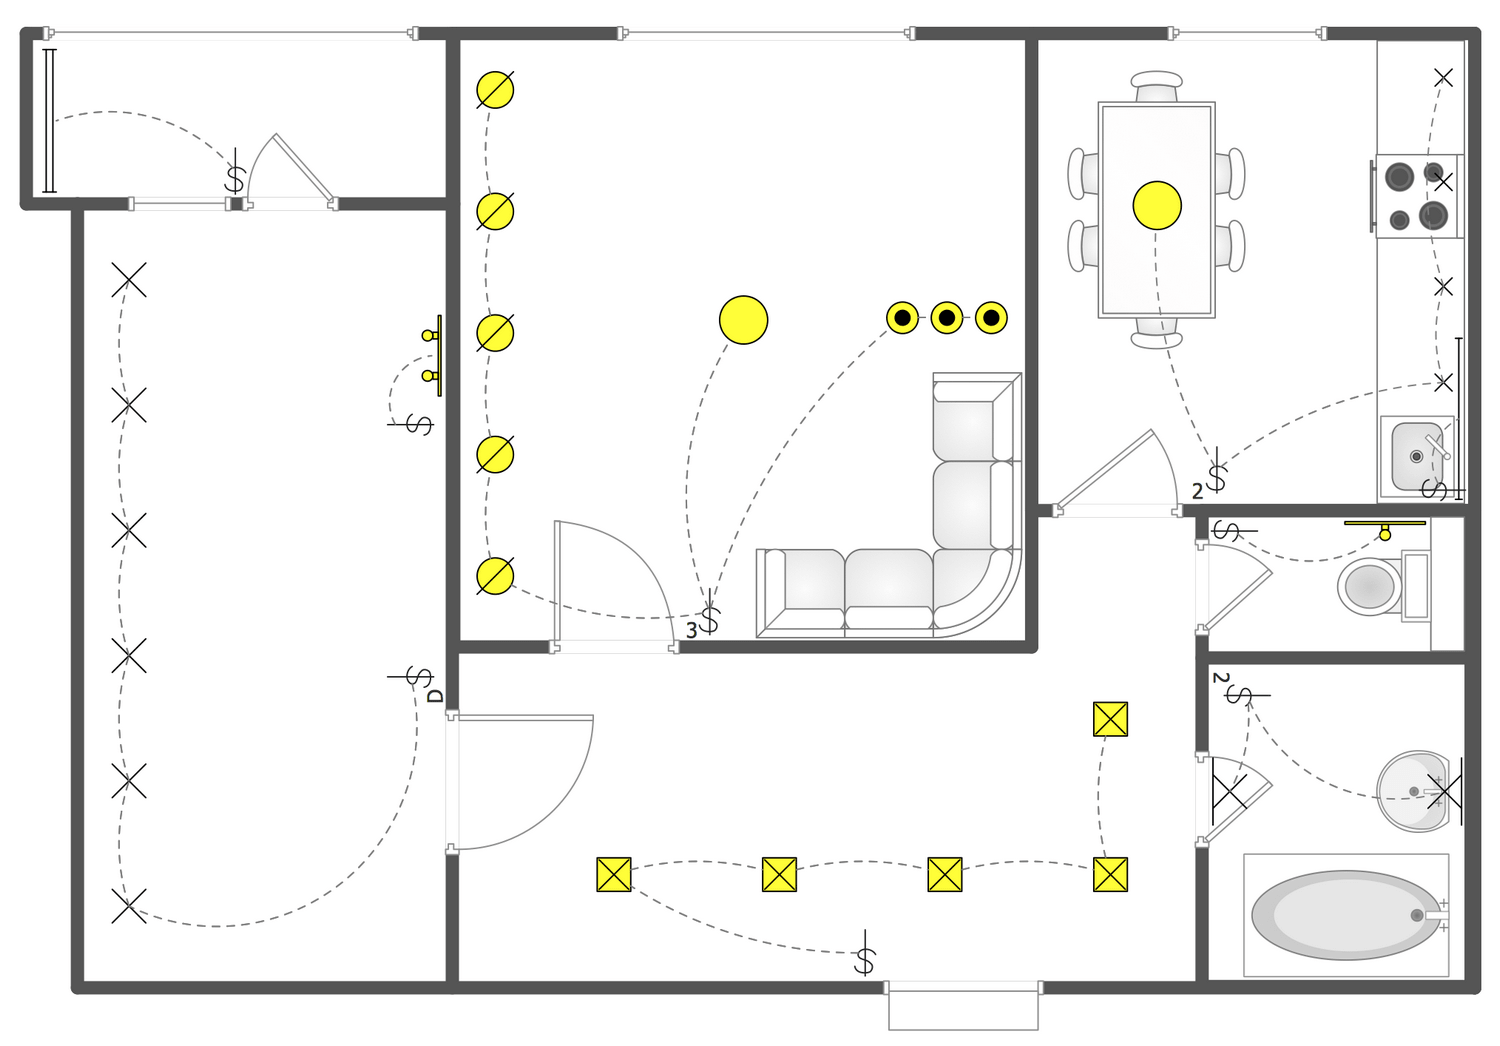 Small Bathroom Design Reflected Ceiling Plans Solution Conceptdraw Com